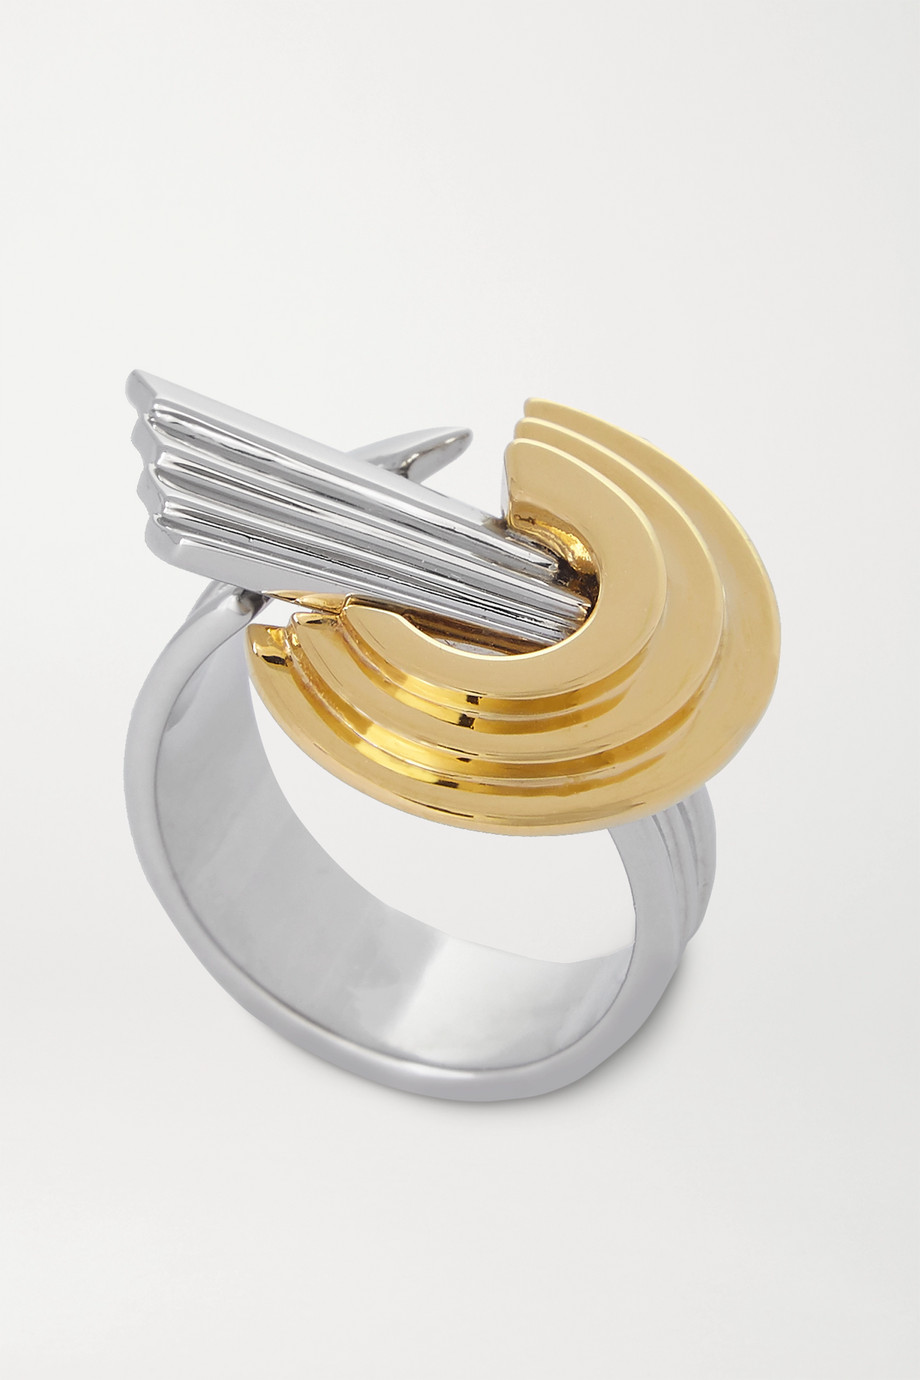 Leda Madera Meryl palladium-plated and gold-plated ring